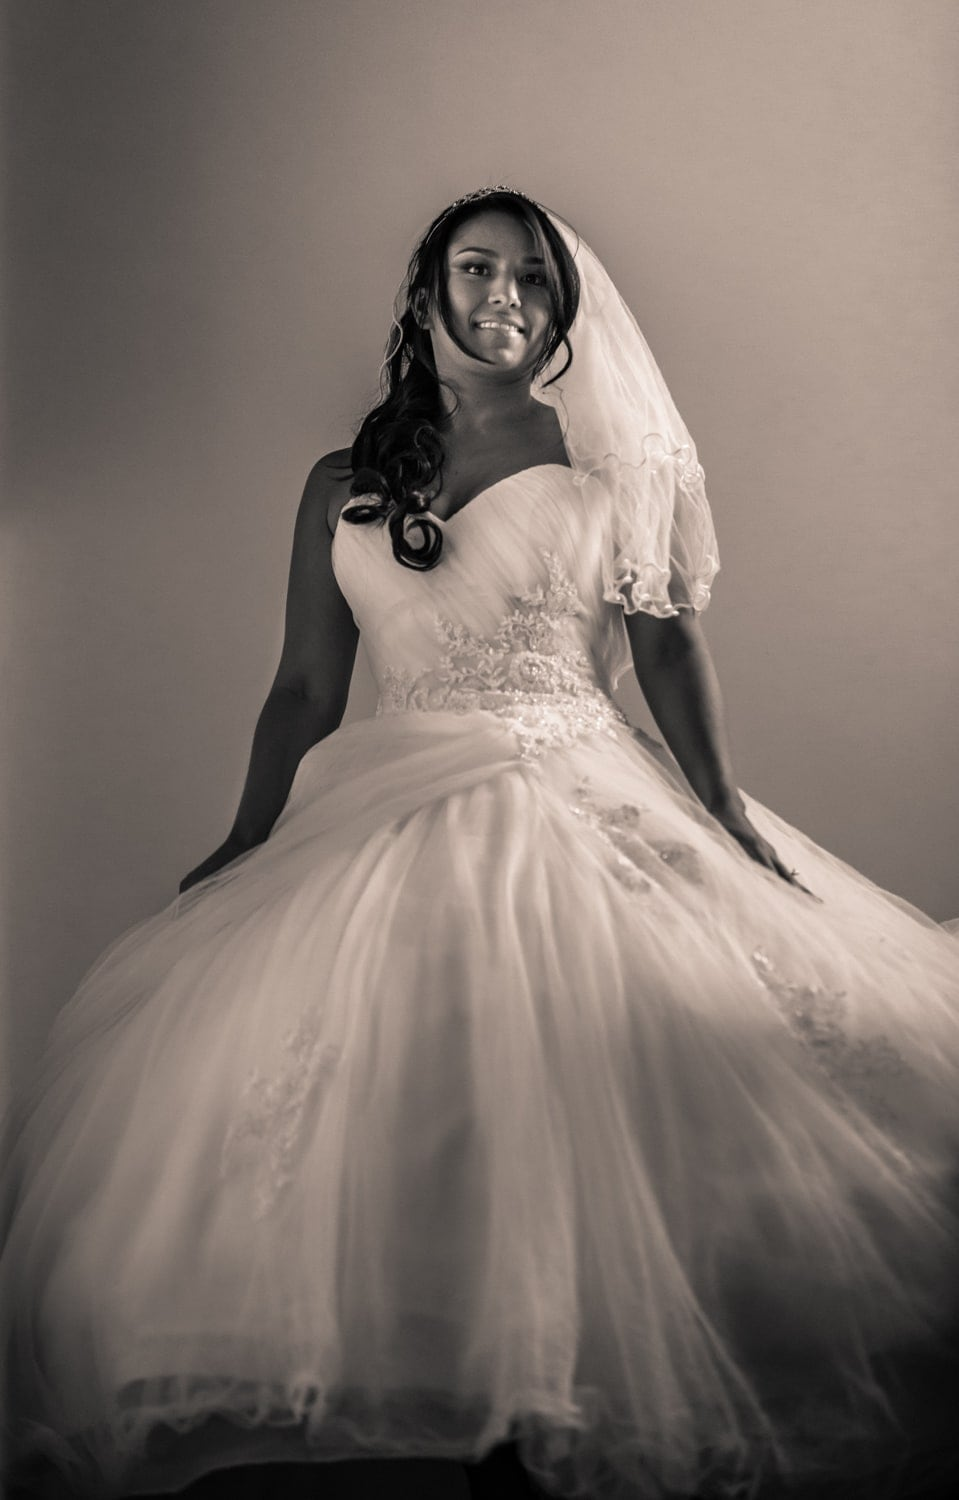 Photo of bride wearing wedding dress just before leaving for church.